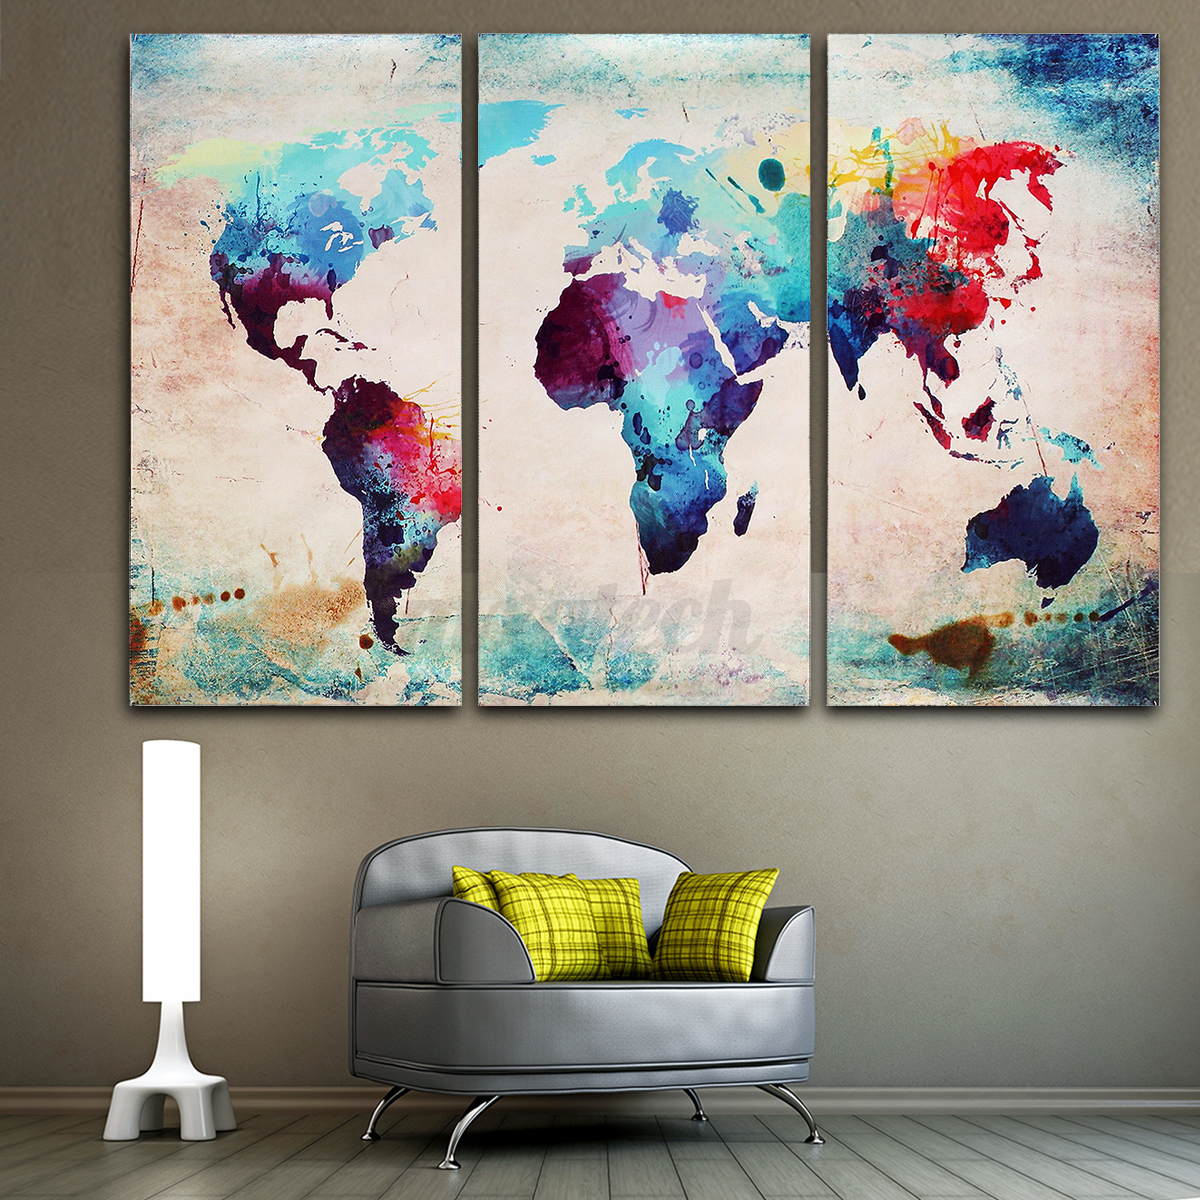 3 panel colourful art world map canvas painting print unframe wall display decor ebay. Black Bedroom Furniture Sets. Home Design Ideas